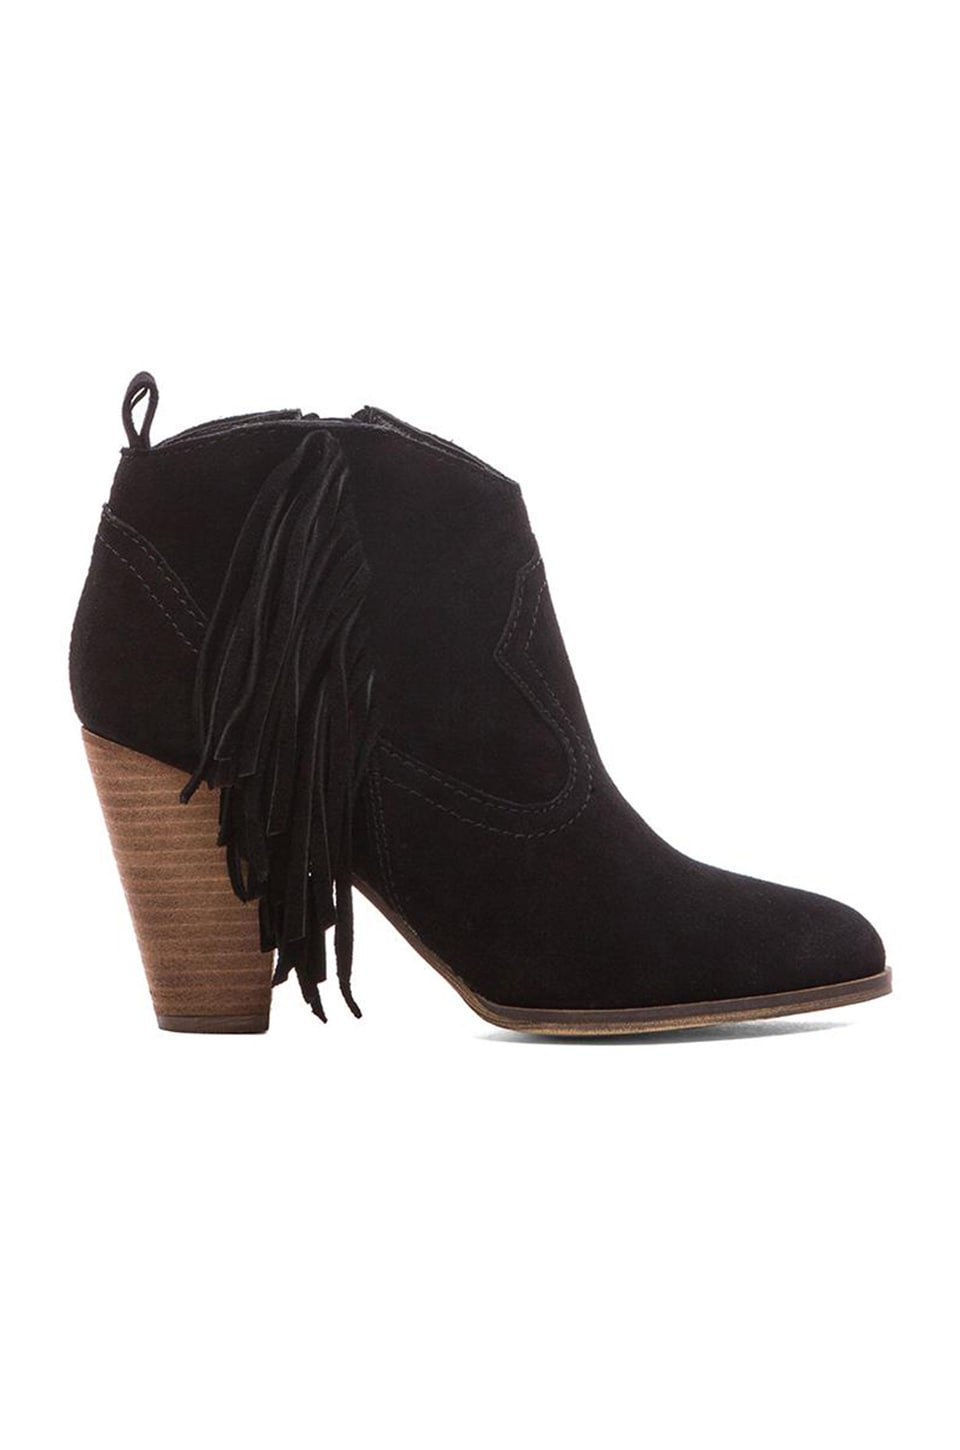 Steve Madden Poncho Bootie in Black Suede